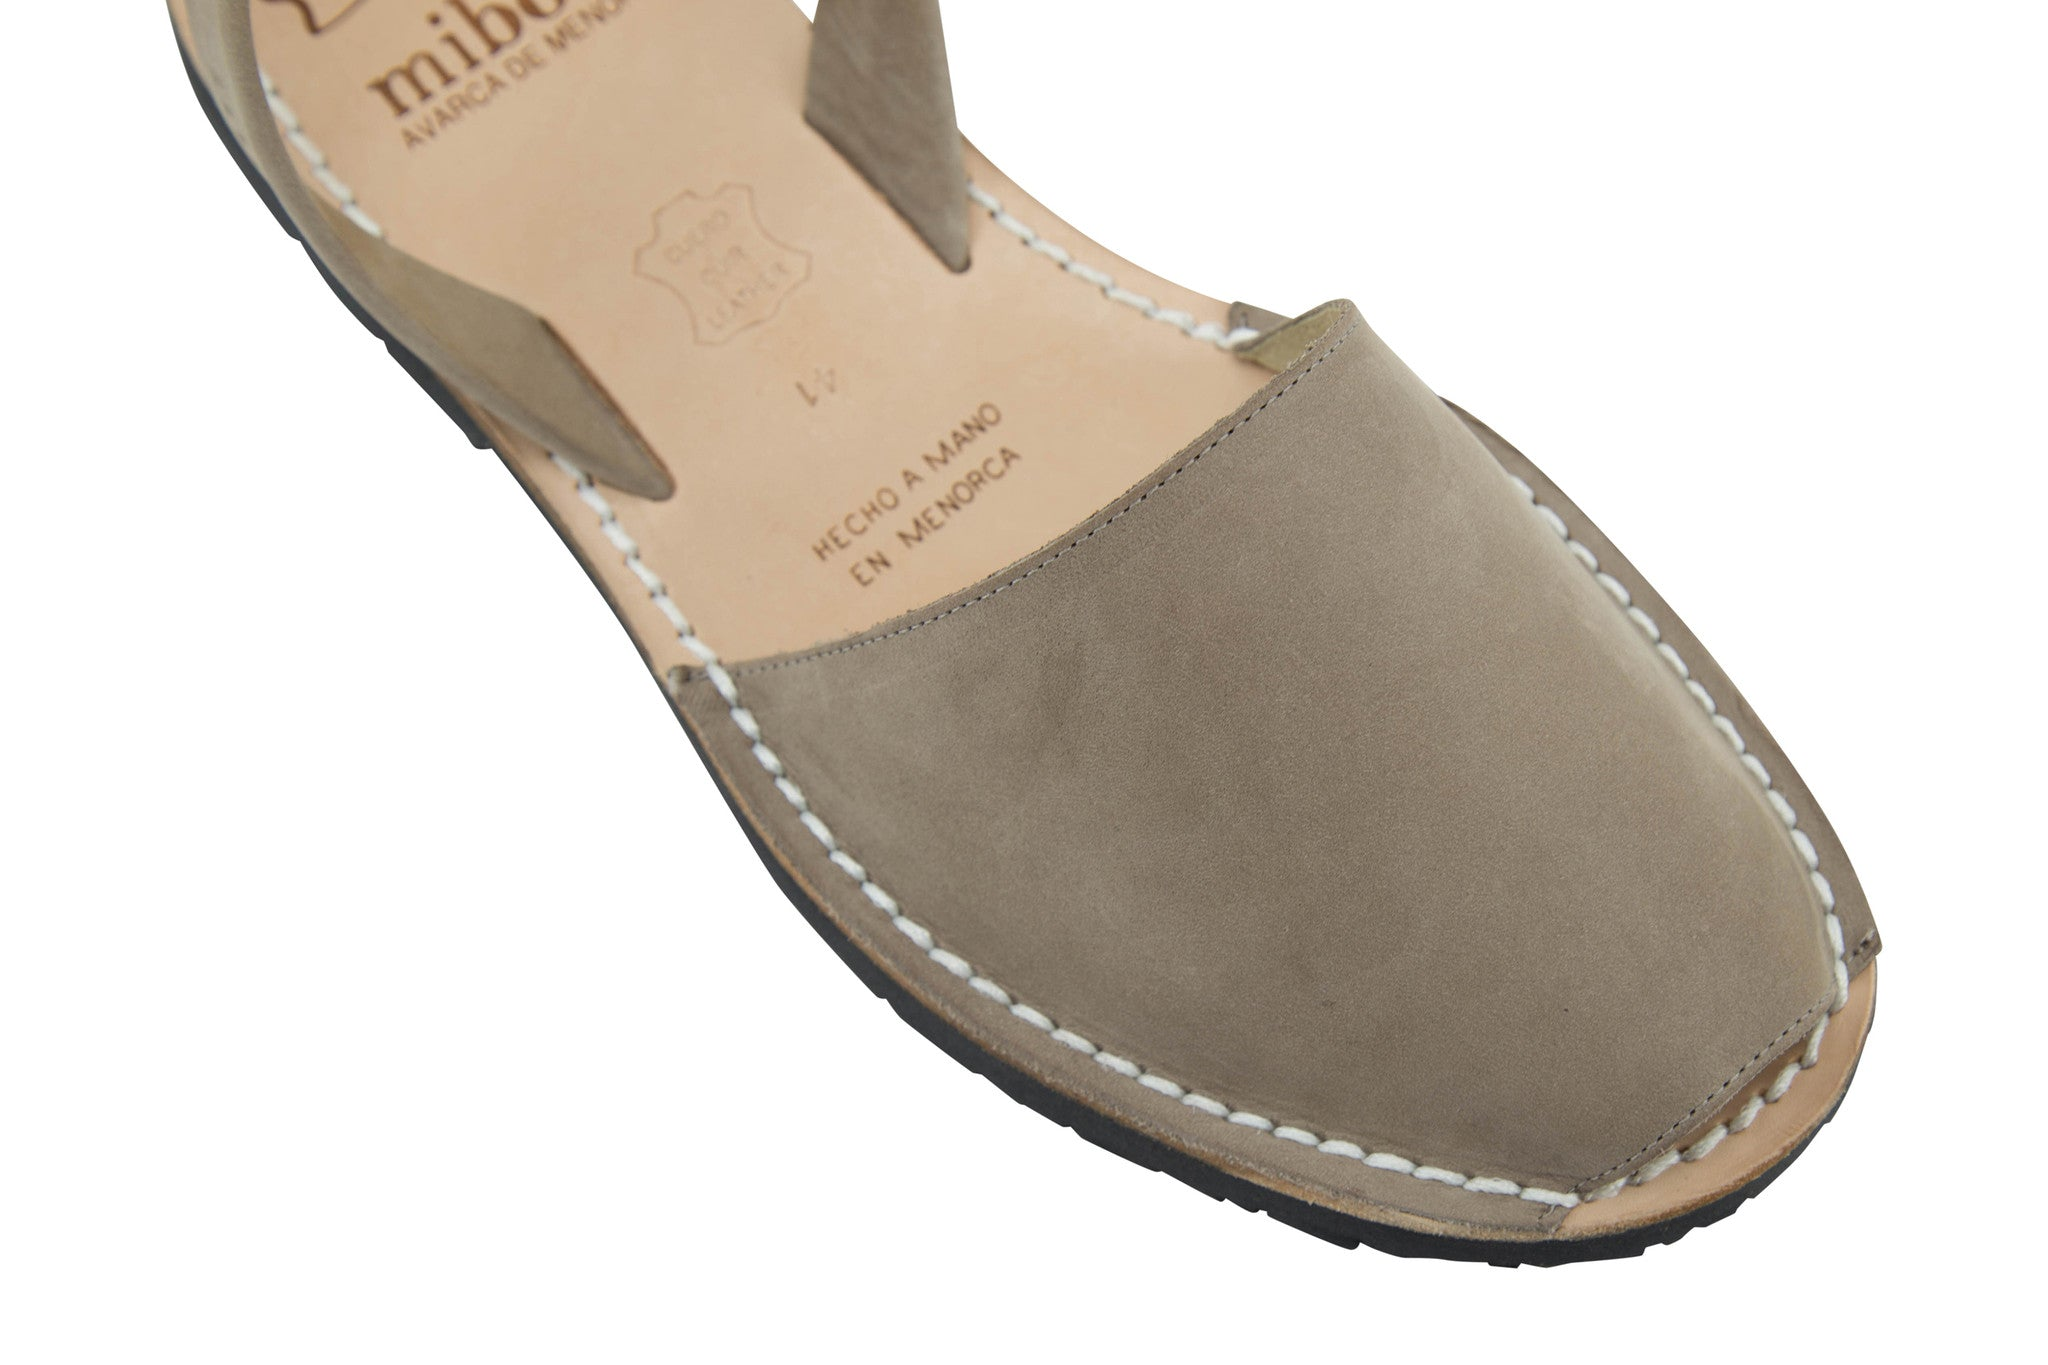 a2540dc54 Mibo Avarcas Women s Classics Taupe Leather Slingback Sandals - THE ...